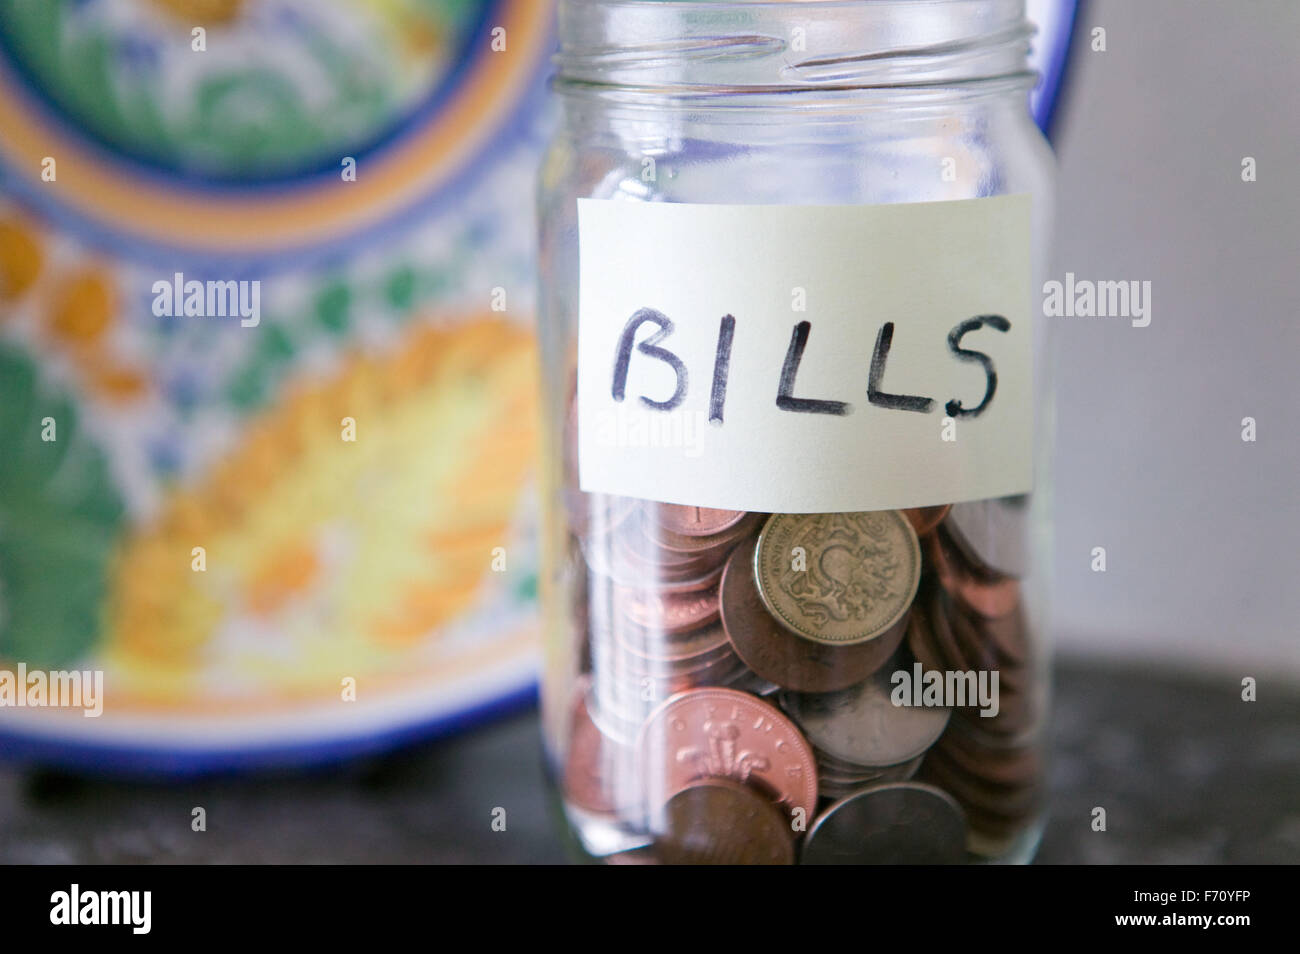 Jar of pennies saved for paying household bills, - Stock Image